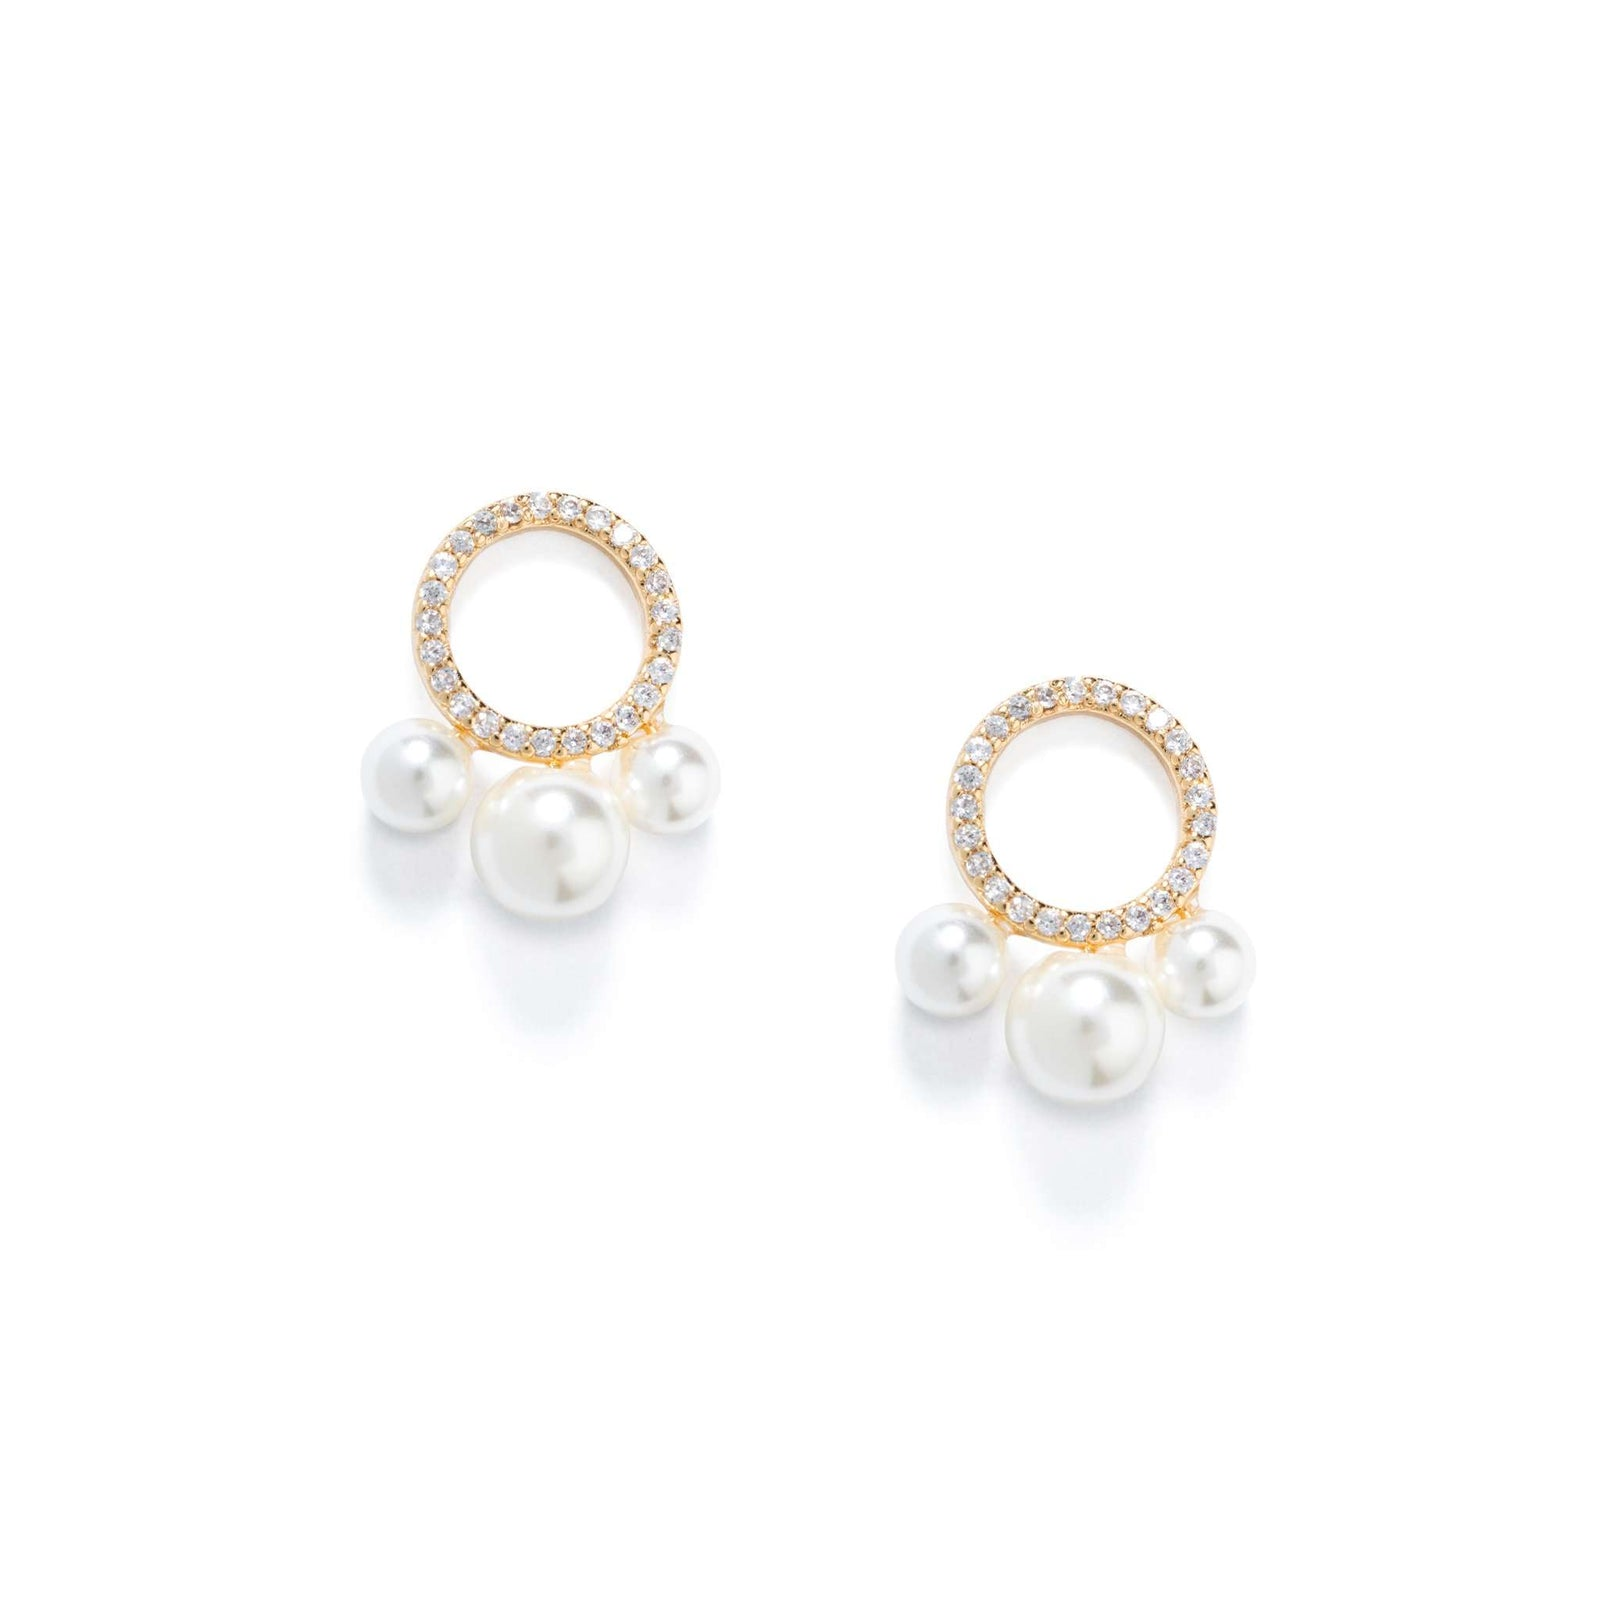 lolita-pearl-pave-studearrings-jewelry